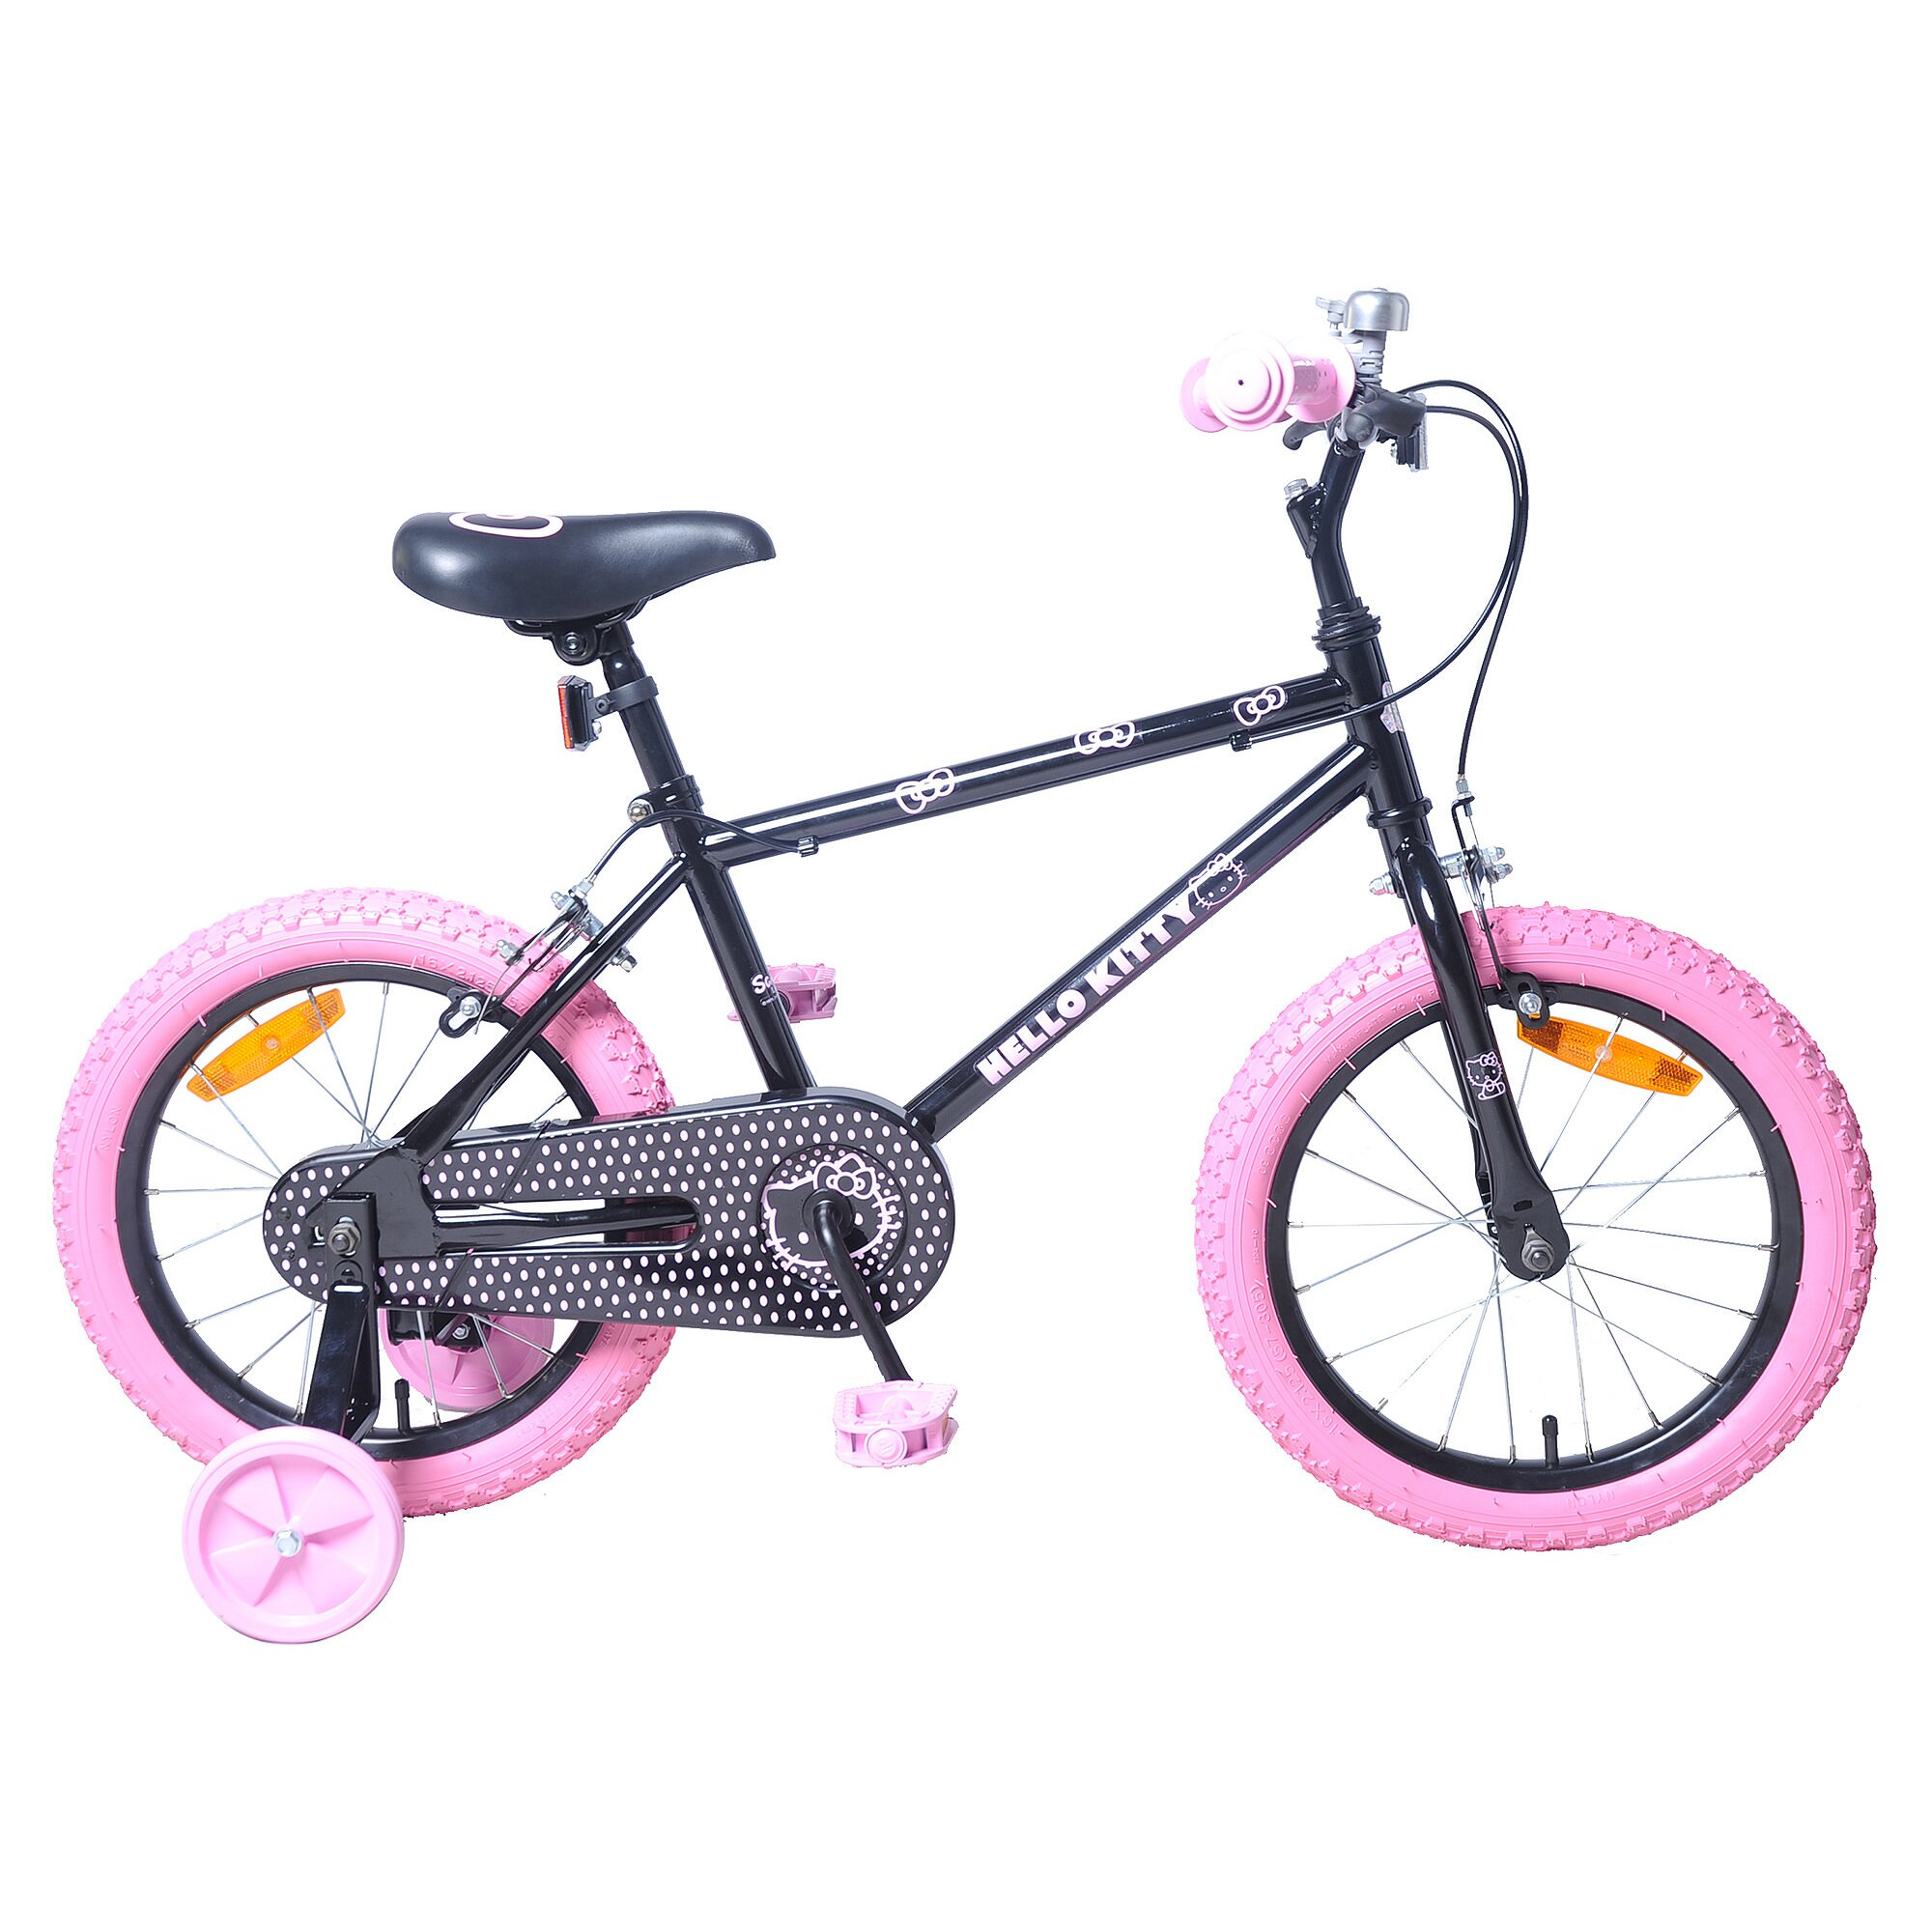 INJUSA Hello Kitty Fahrrad Hello Kitty 16 Zoll